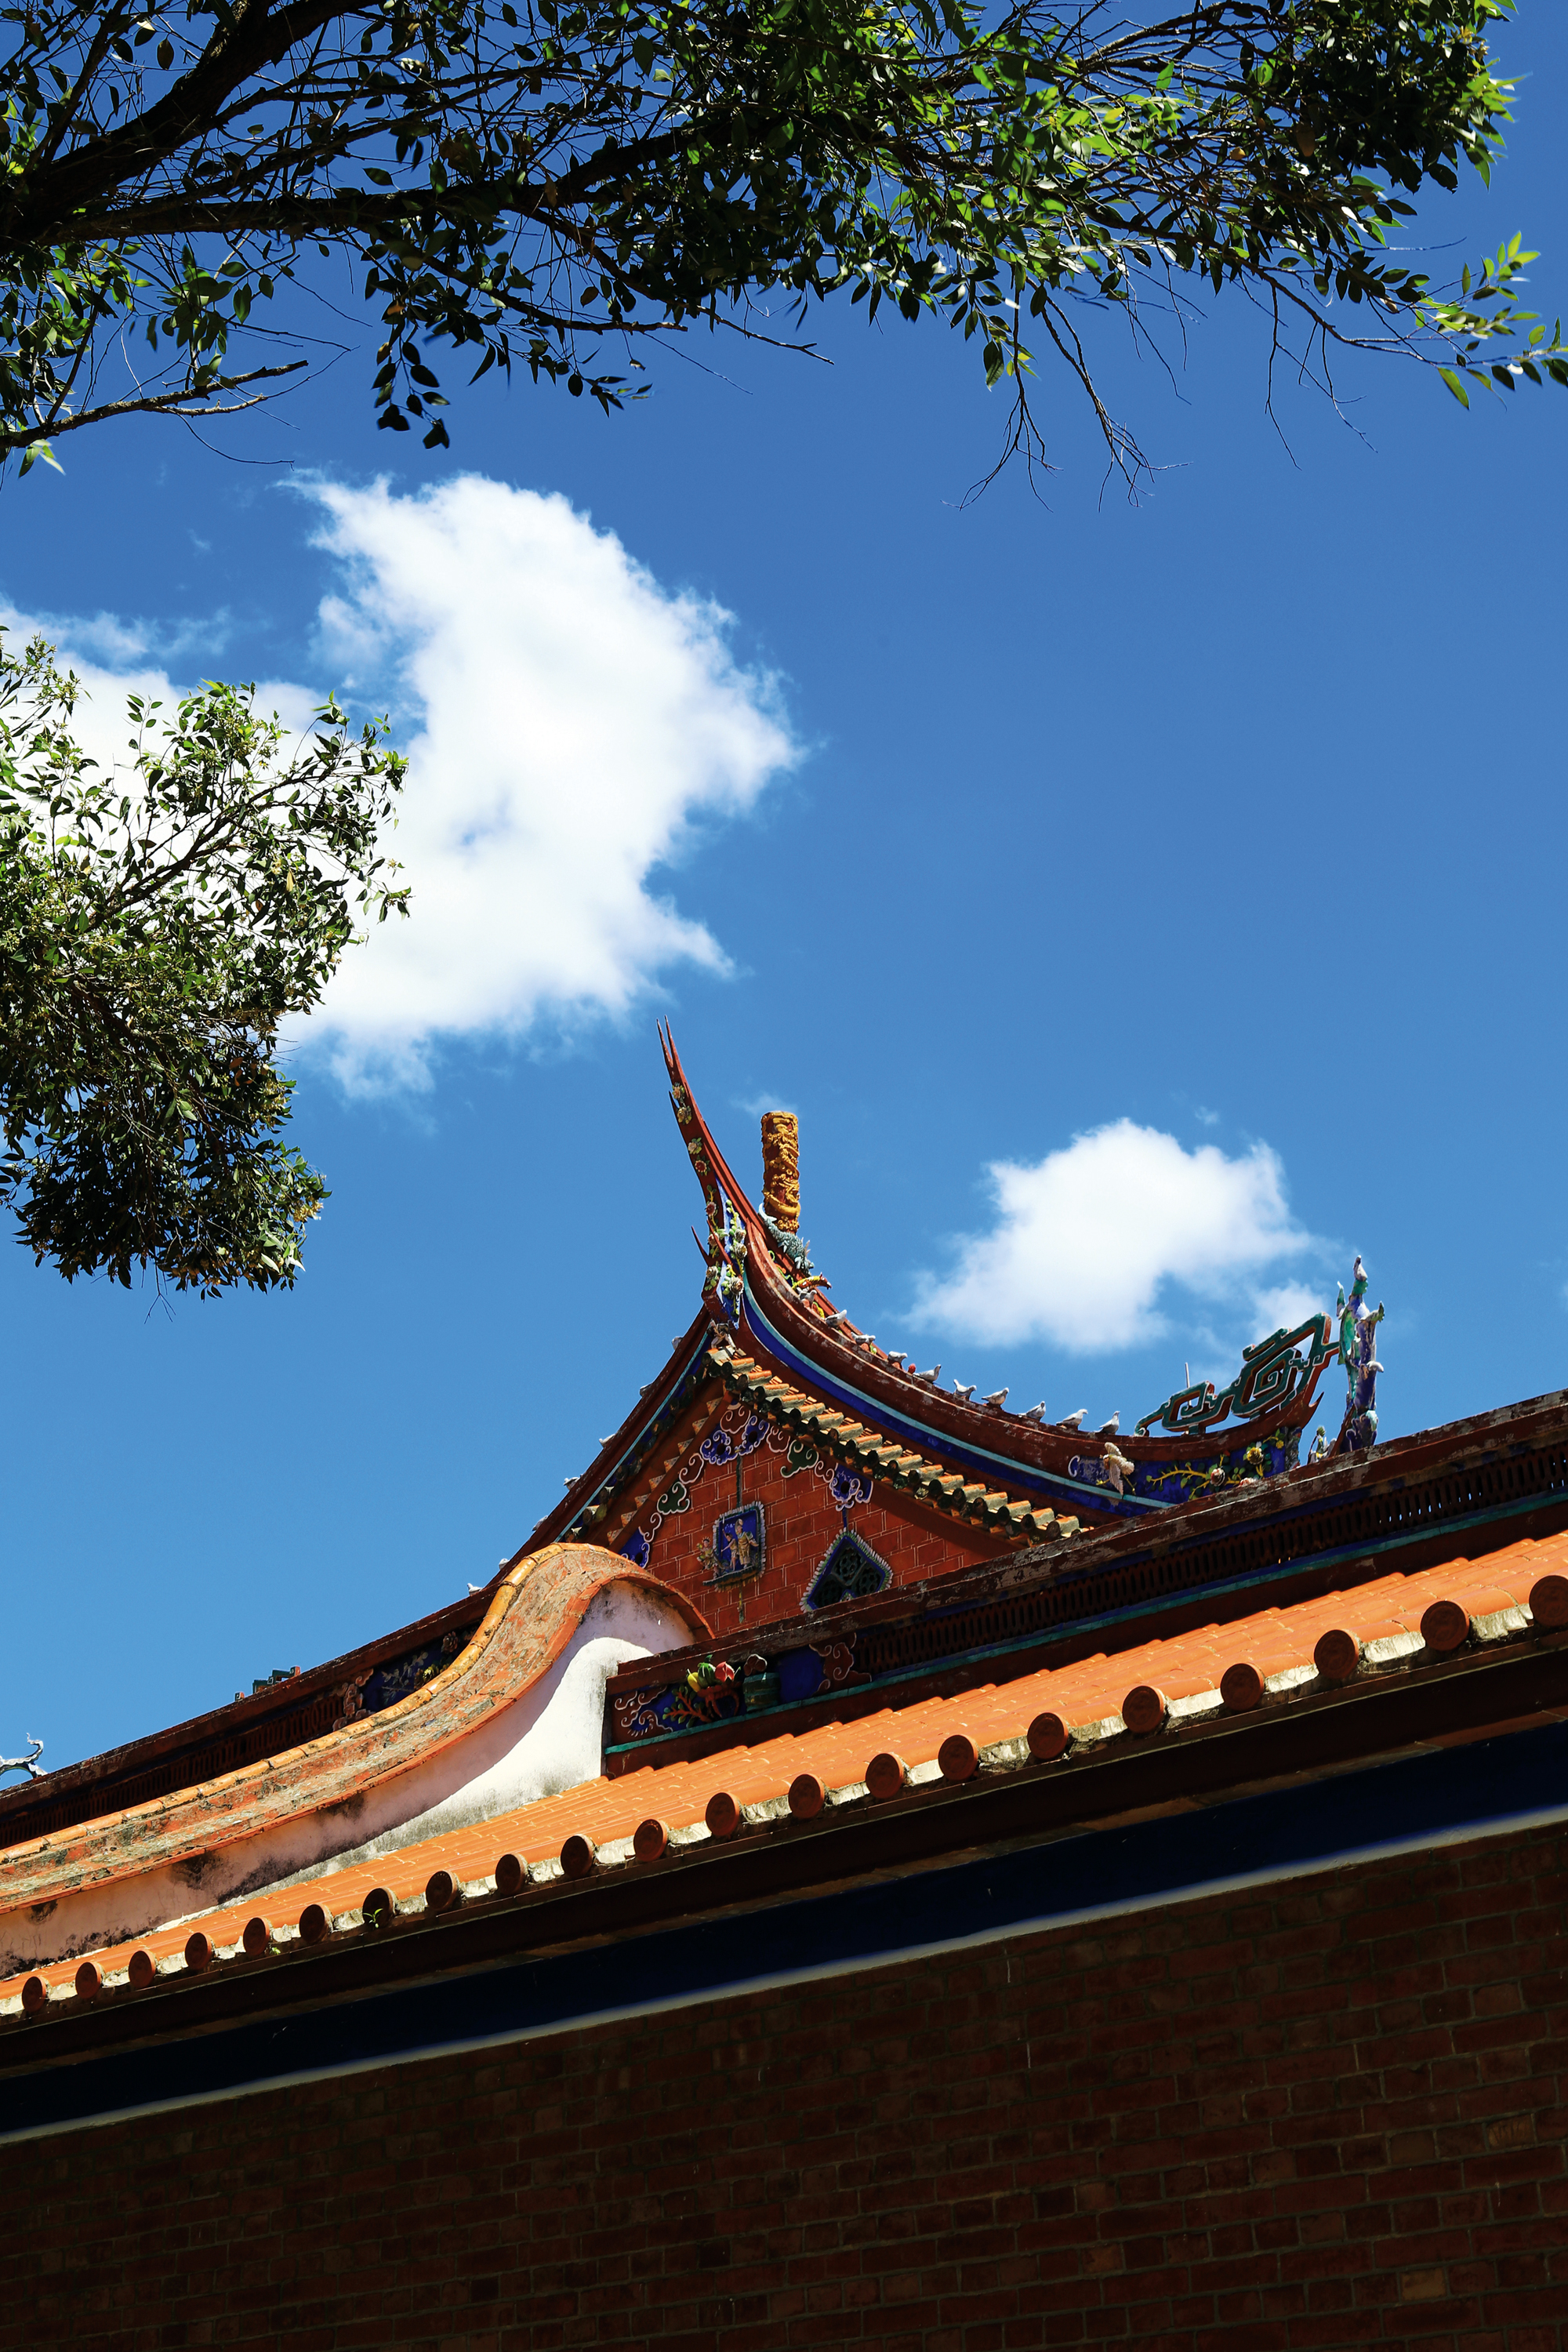 The Taipei Confucius Temple's exquisite traditional craftsmanship conveys a distinctly scholarly air.